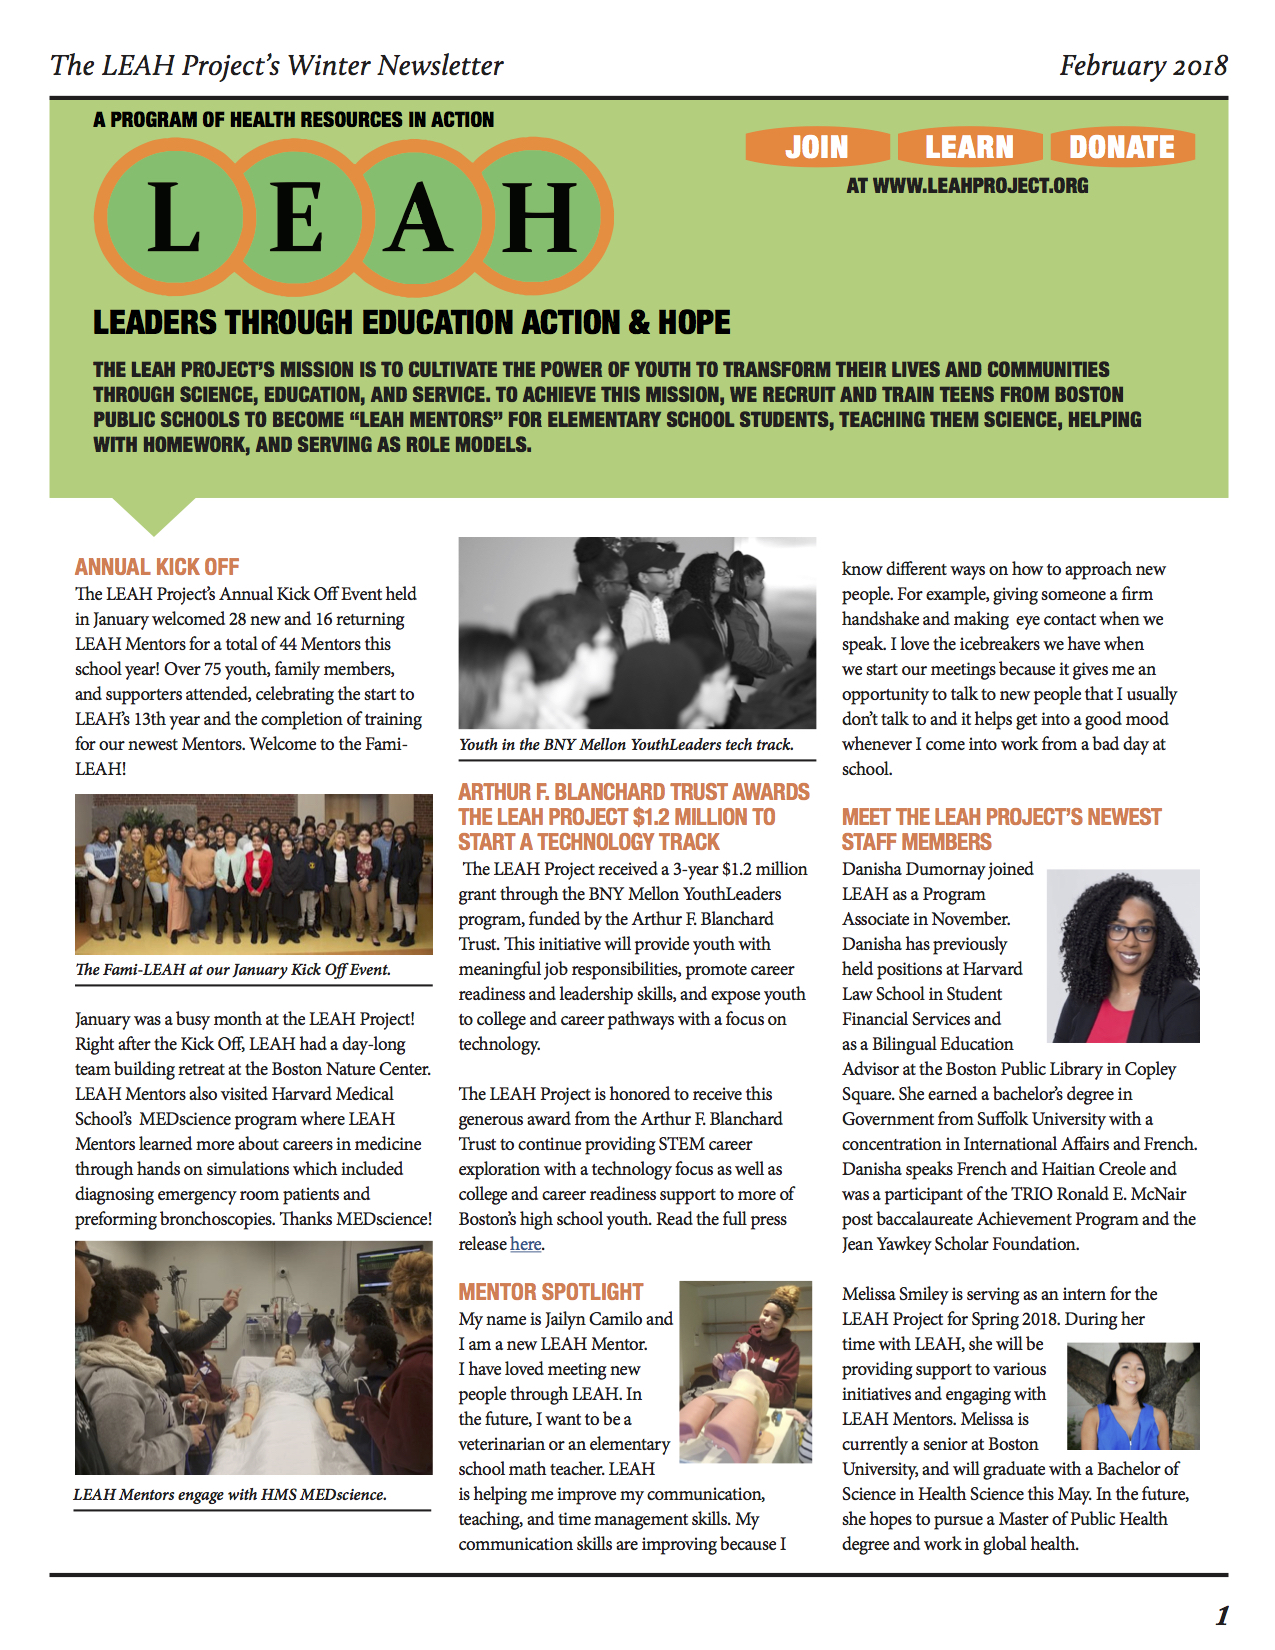 20180207-LEAH-Winter Newsletter 2018.jpg